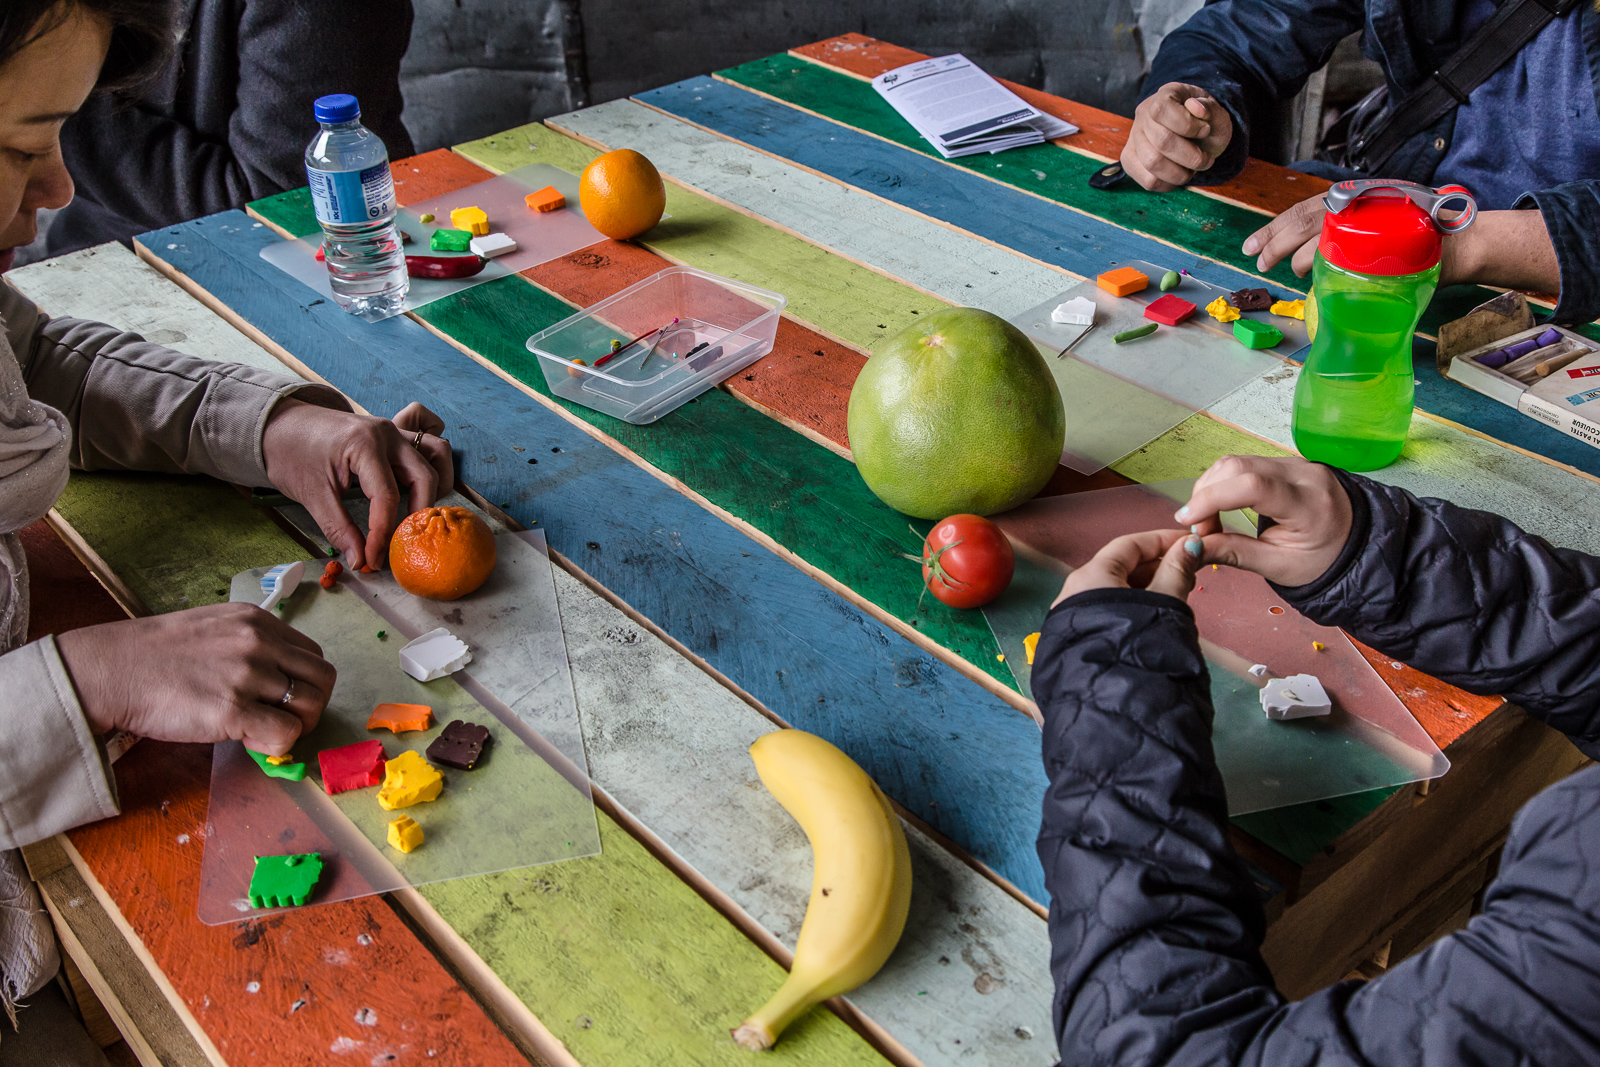 People making miniature fruits as part of Isobel Knowles and Van Sowerwine's model-making workshop. Photo by Bryony Jackson.